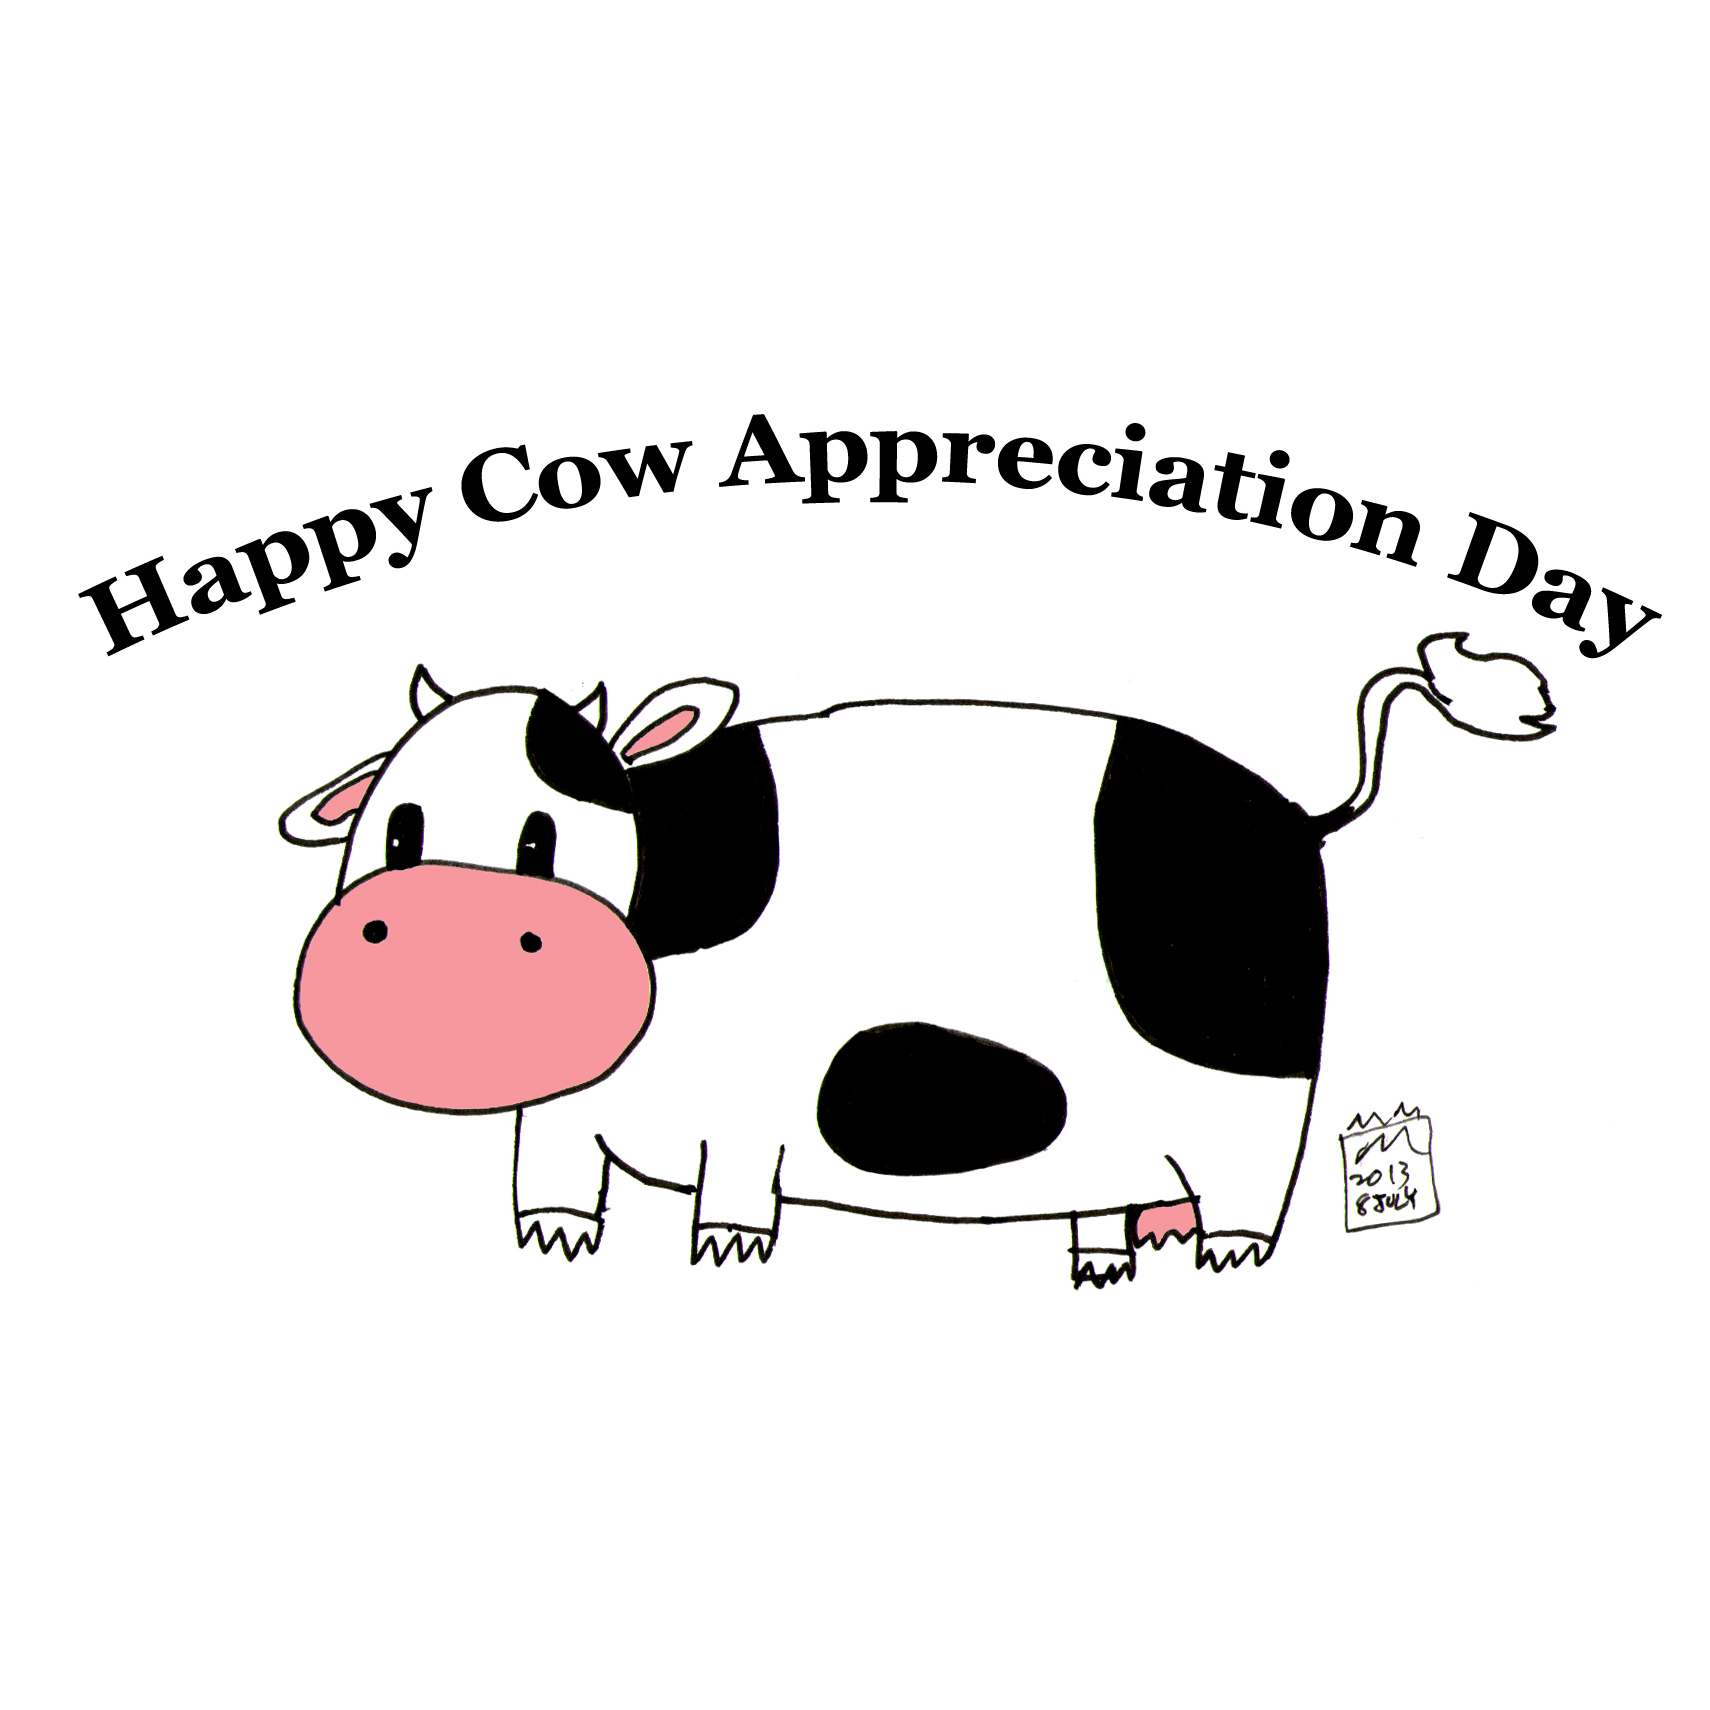 Cow Appreciation Day Dekalb County Convention And